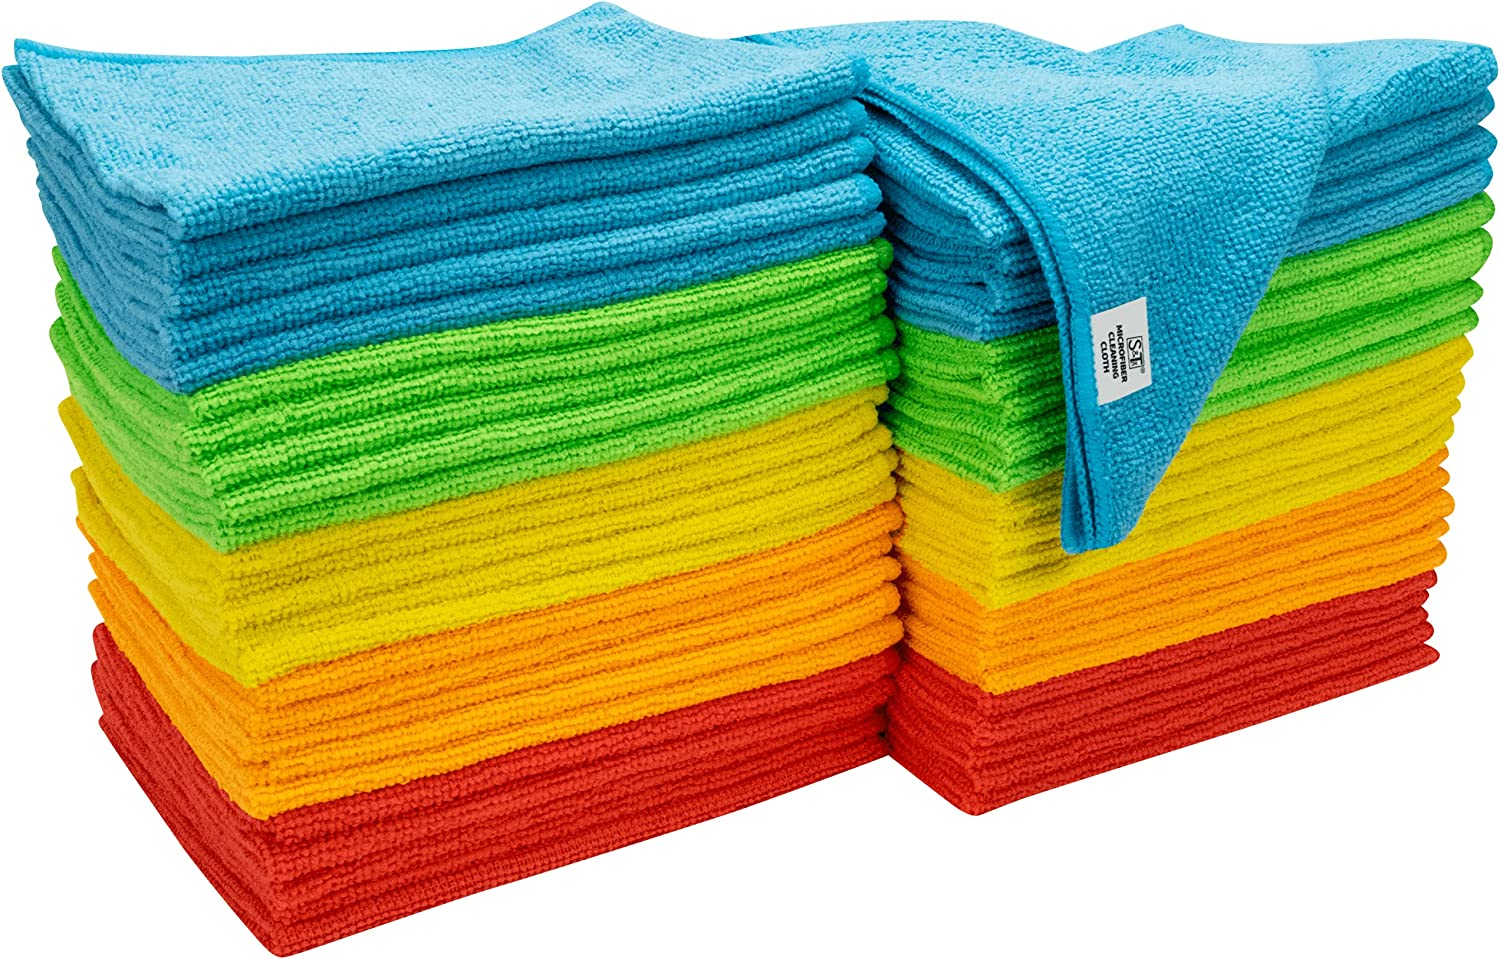 S&T INC. Microfiber Cleaning Cloths, Reusable and Lint-Free Towels for Home, Kitchen and Auto, 50 Pack, 12 Inch x 16 Inch, Assorted